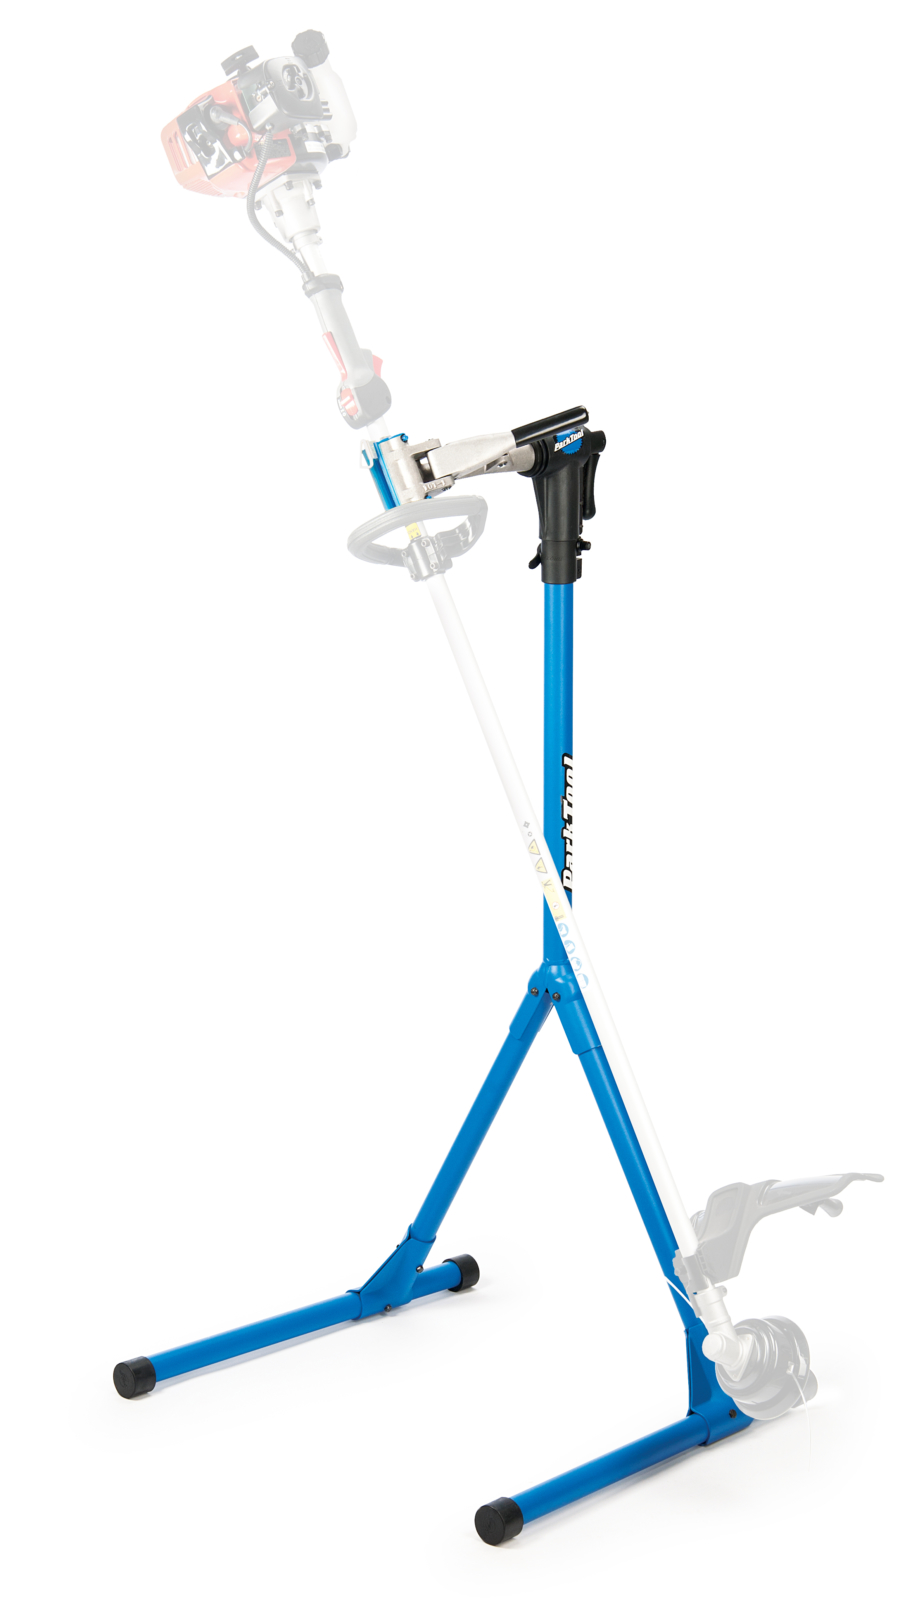 Standard Portable Floor Stand Park Tool Trimmer